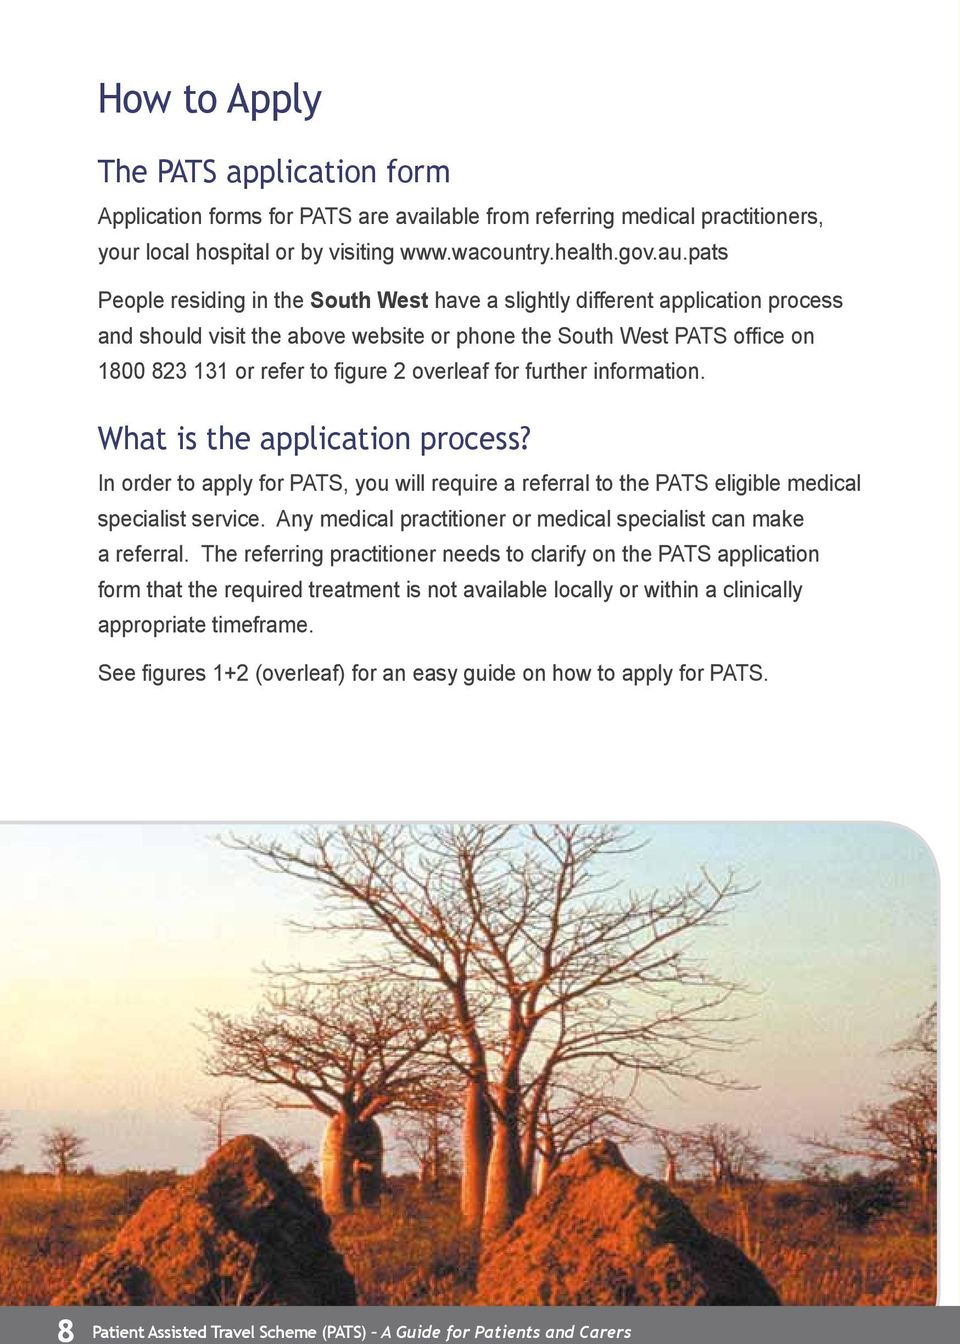 overleaf for further information. What is the application process? In order to apply for PATS, you will require a referral to the PATS eligible medical specialist service.